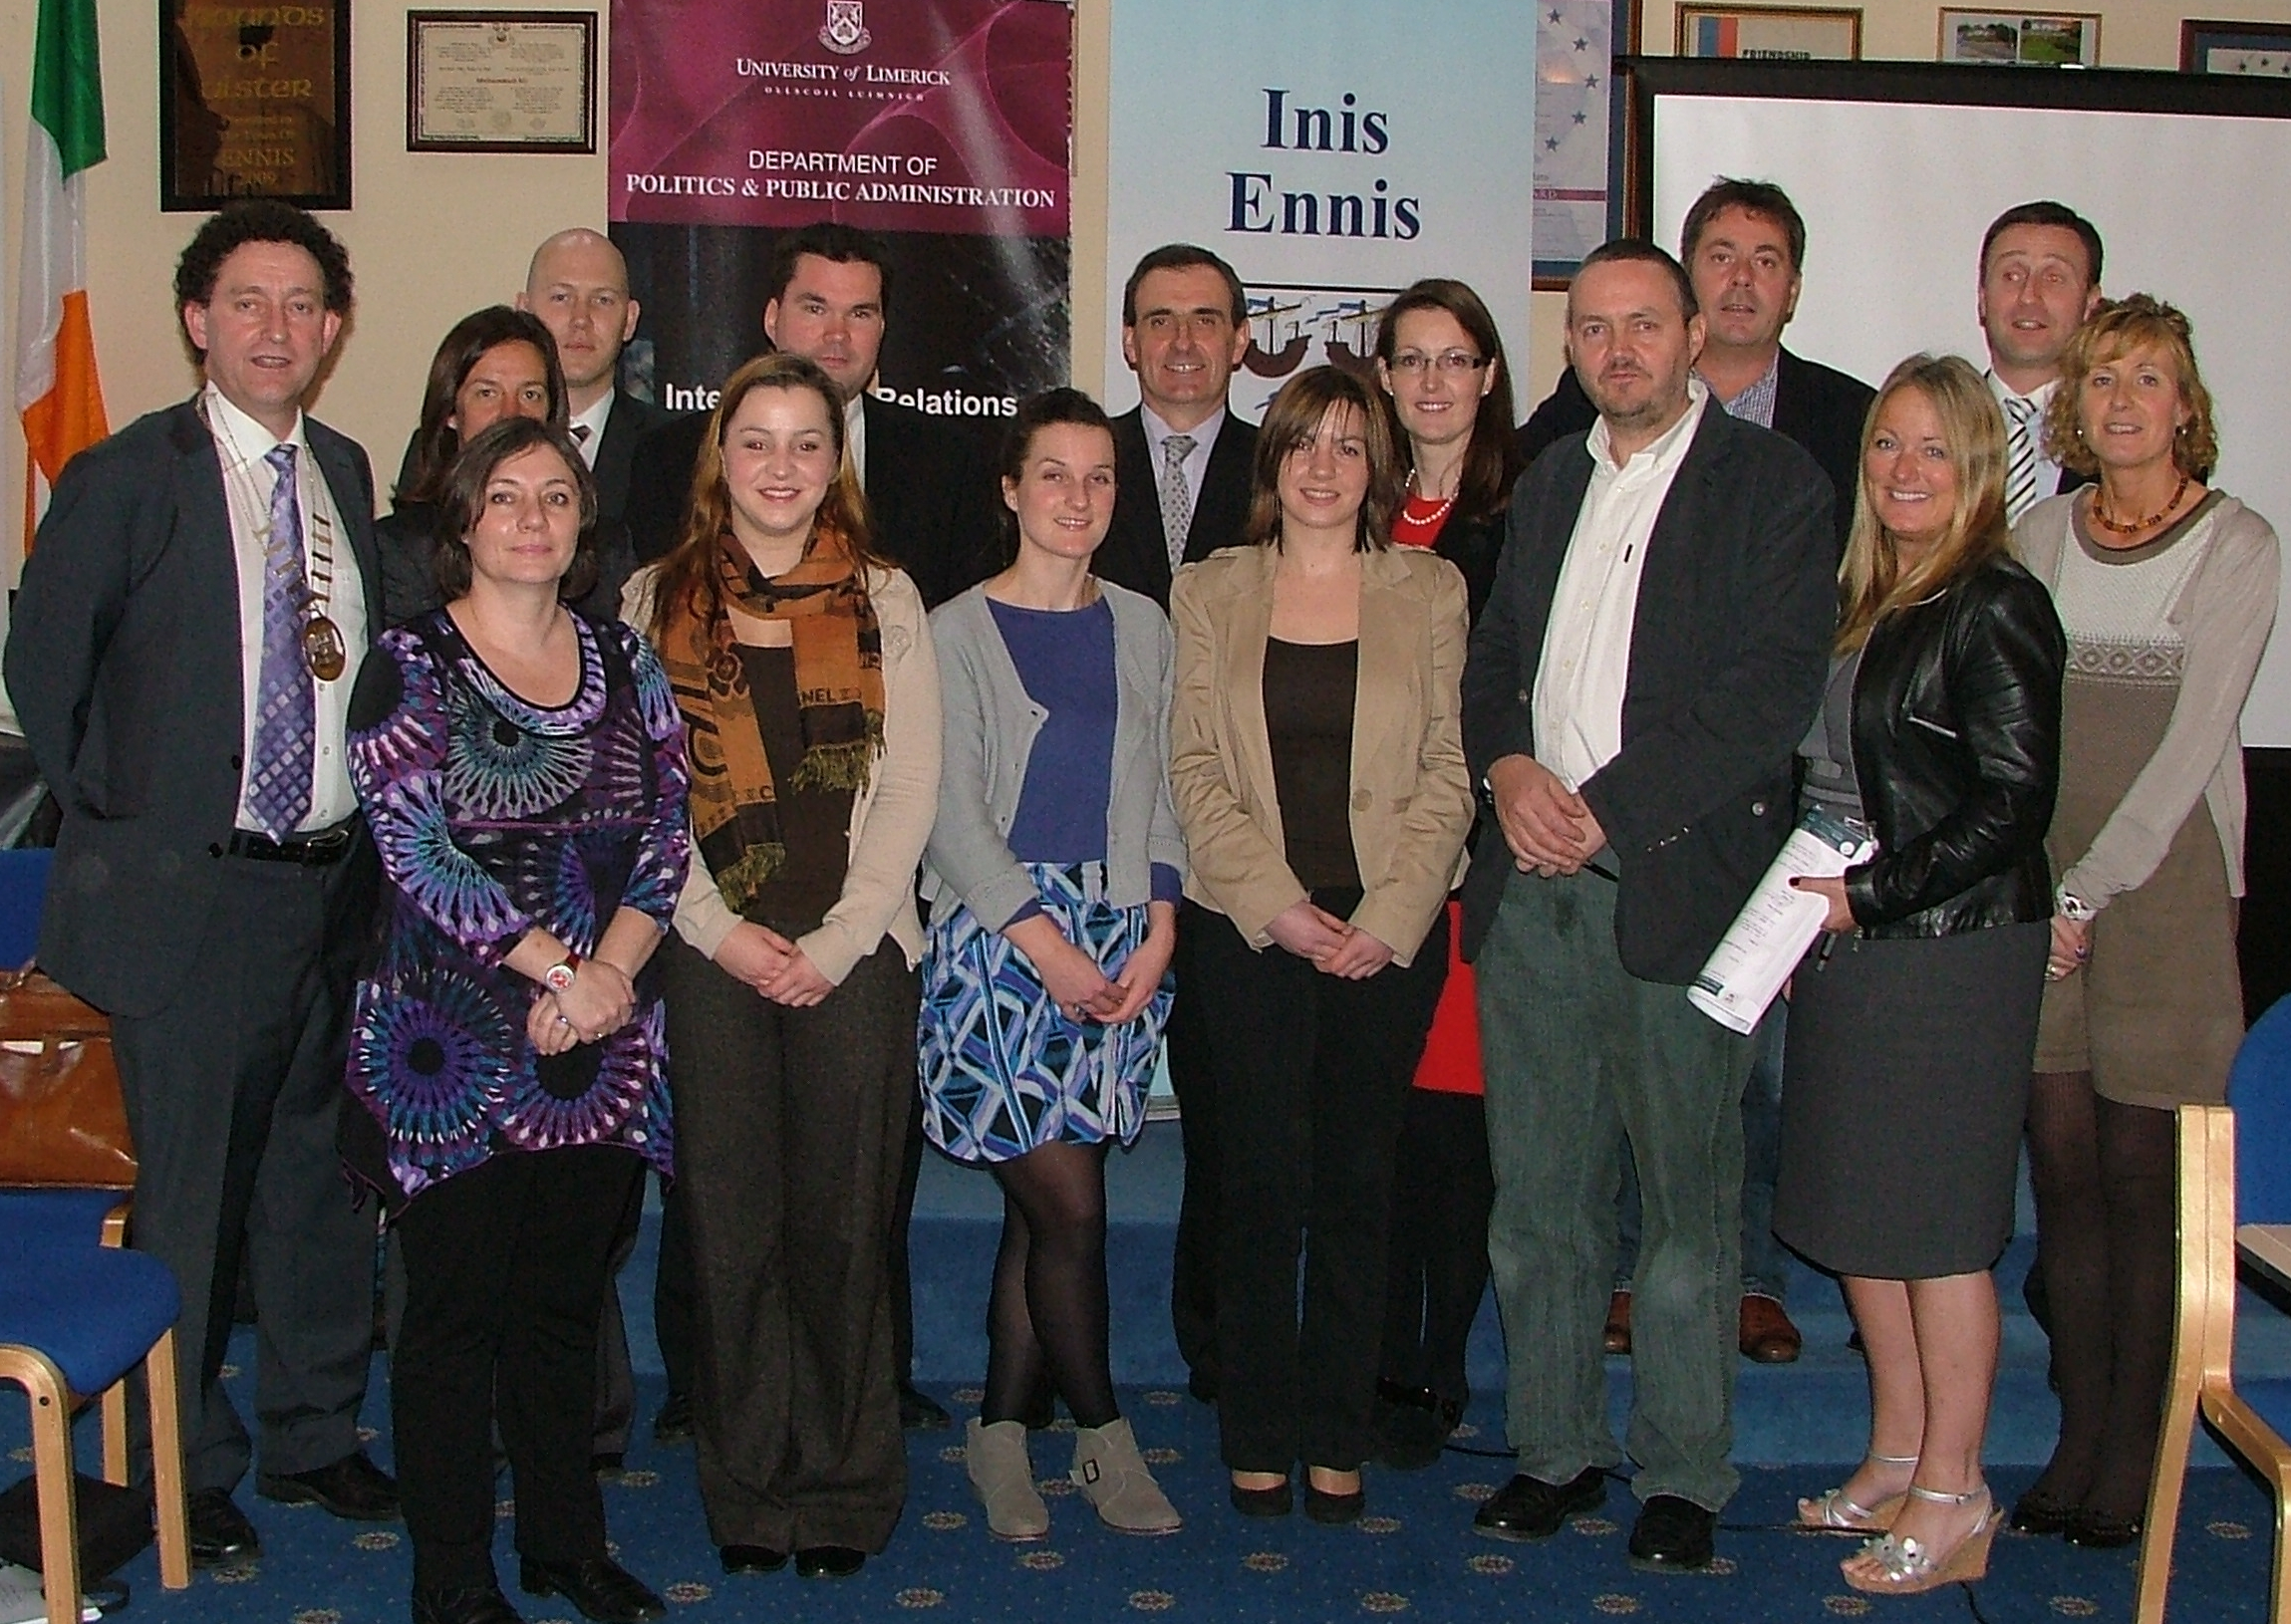 Town Officials with UL staff and students at Launch of Ennis 2020 online package_2 Visioning 1